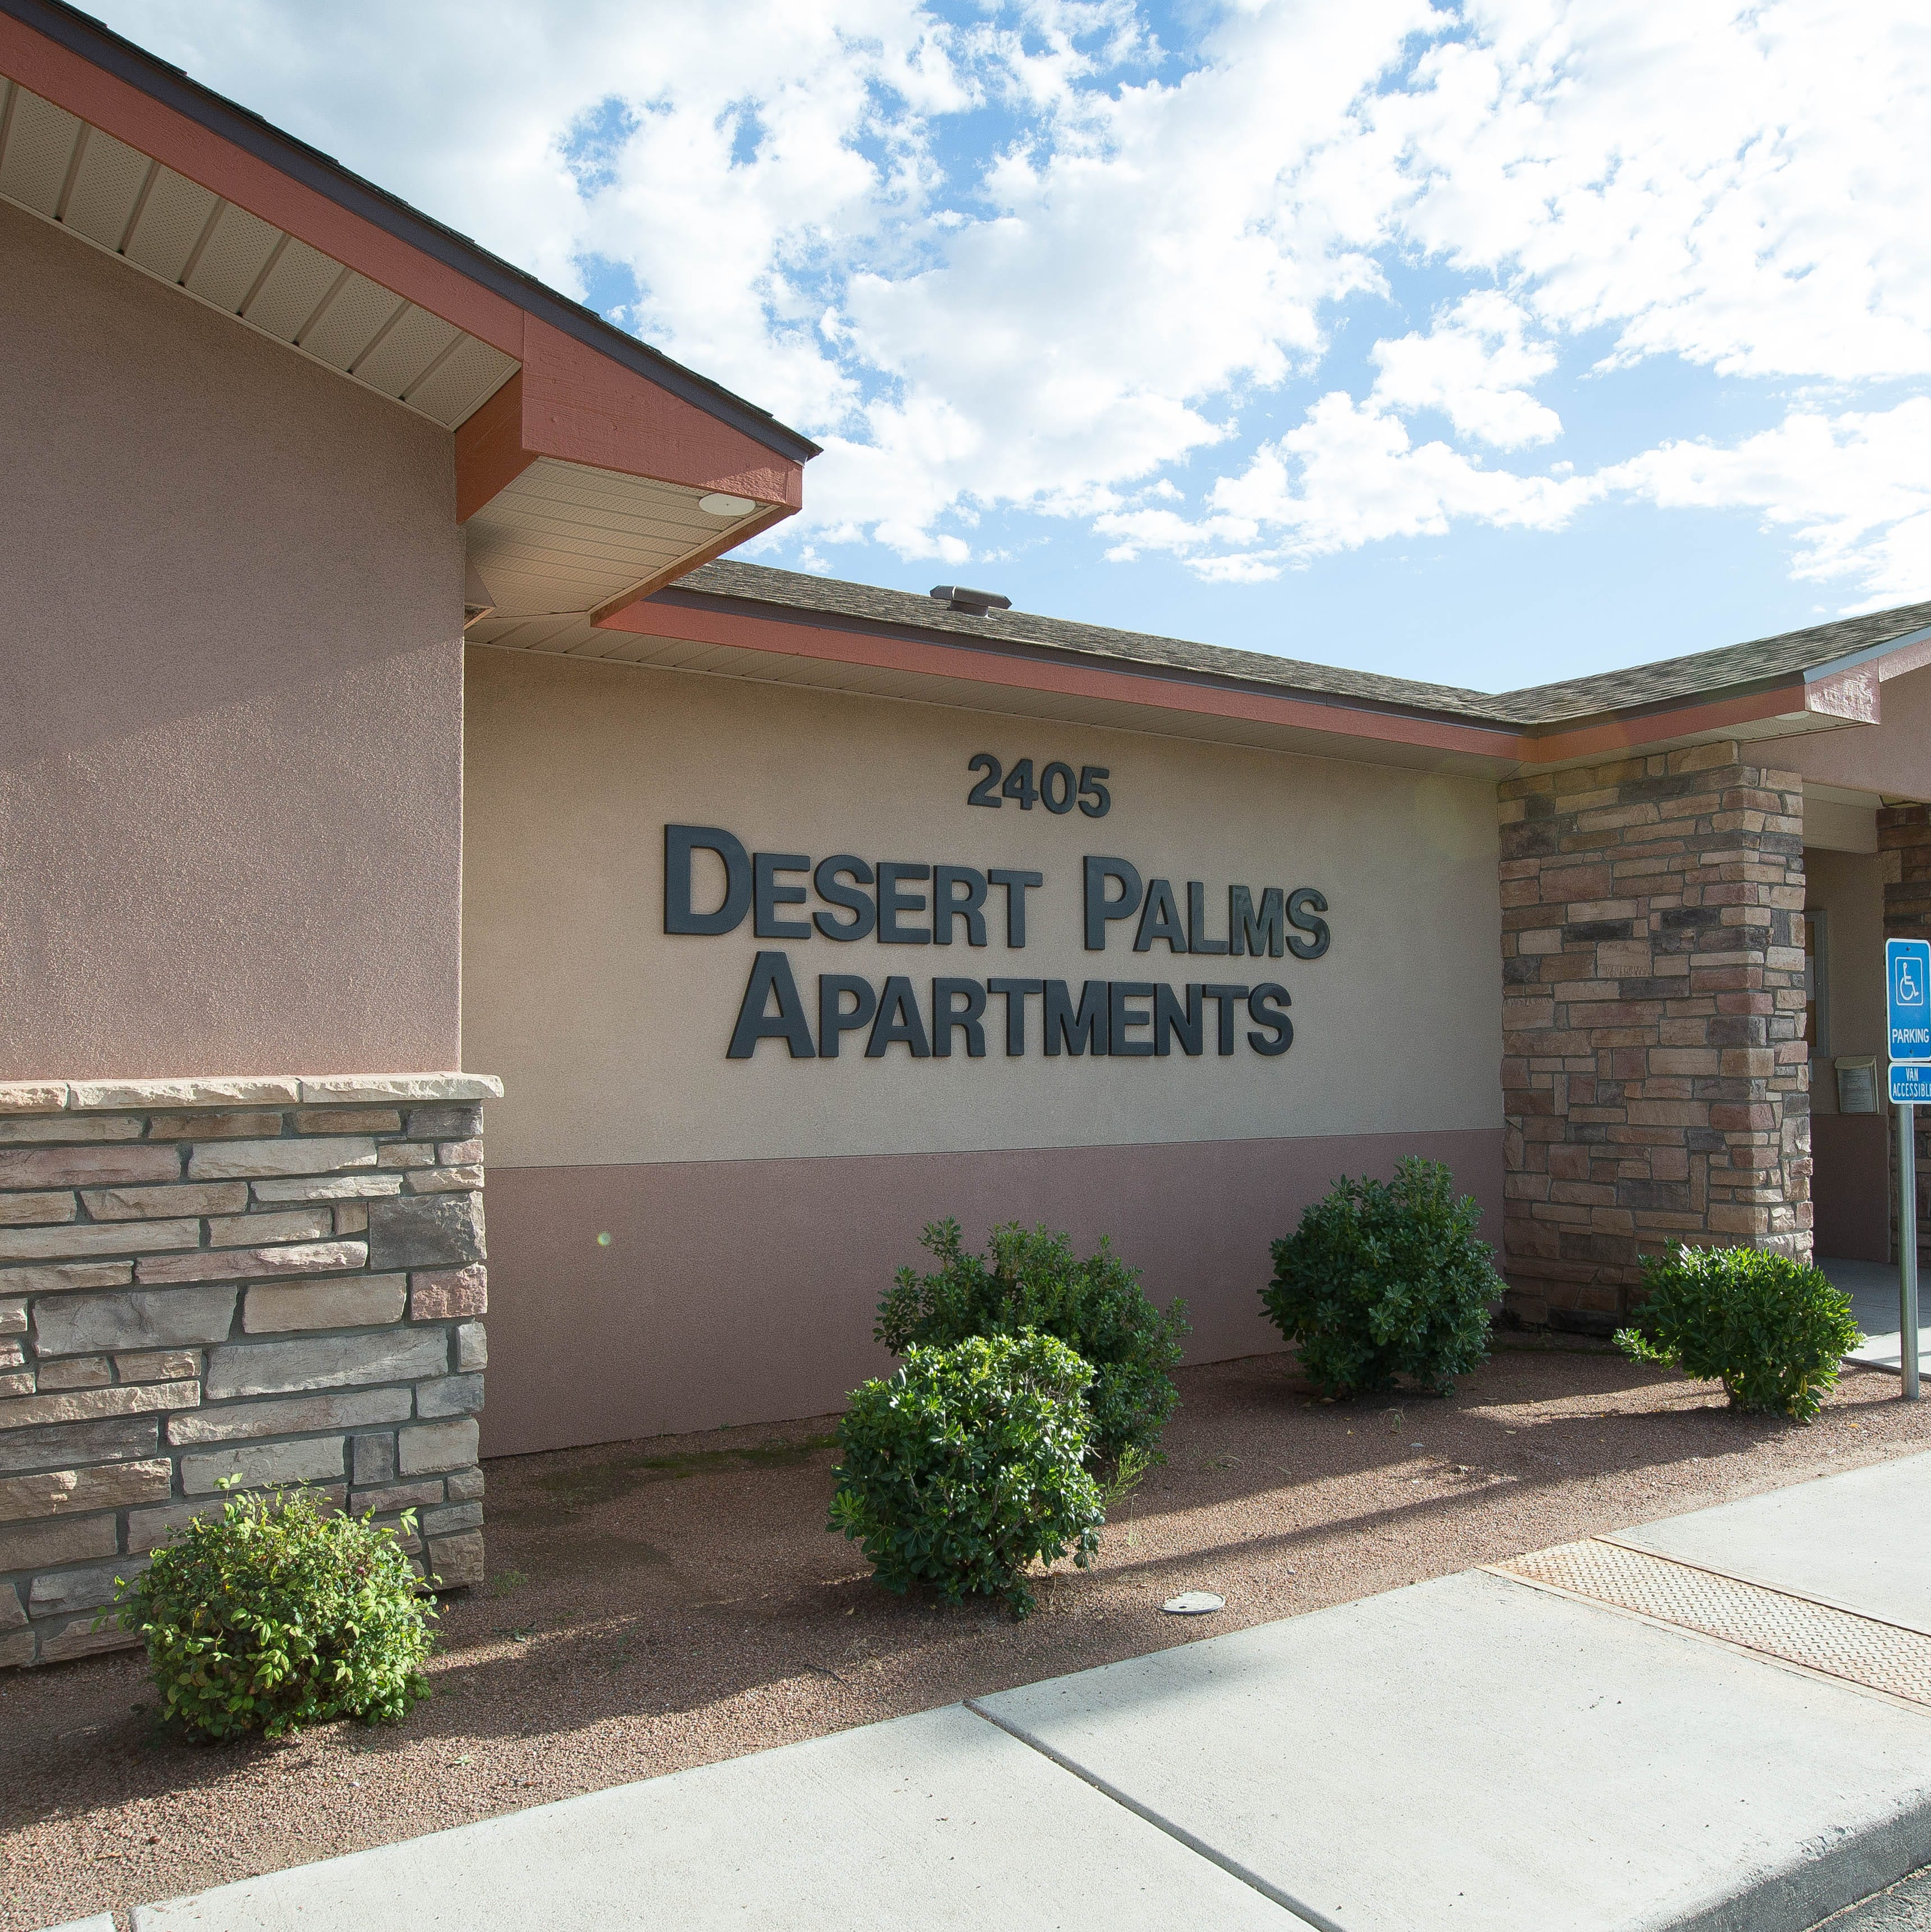 Lawsuit filed against Desert Palms Apartments; alleges bed bug infestation